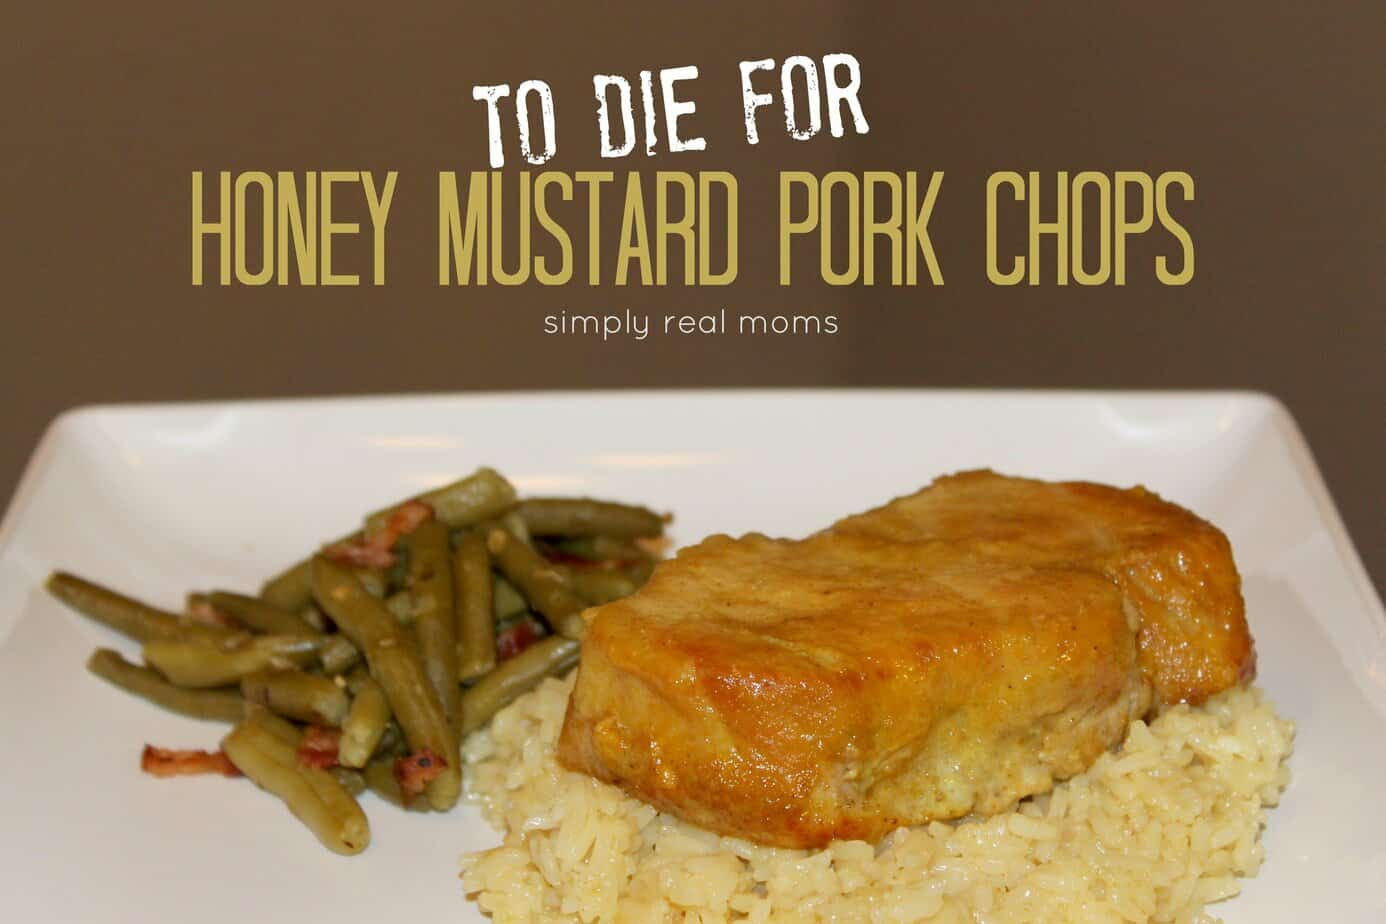 To Die For Honey Mustard Pork Chops 1